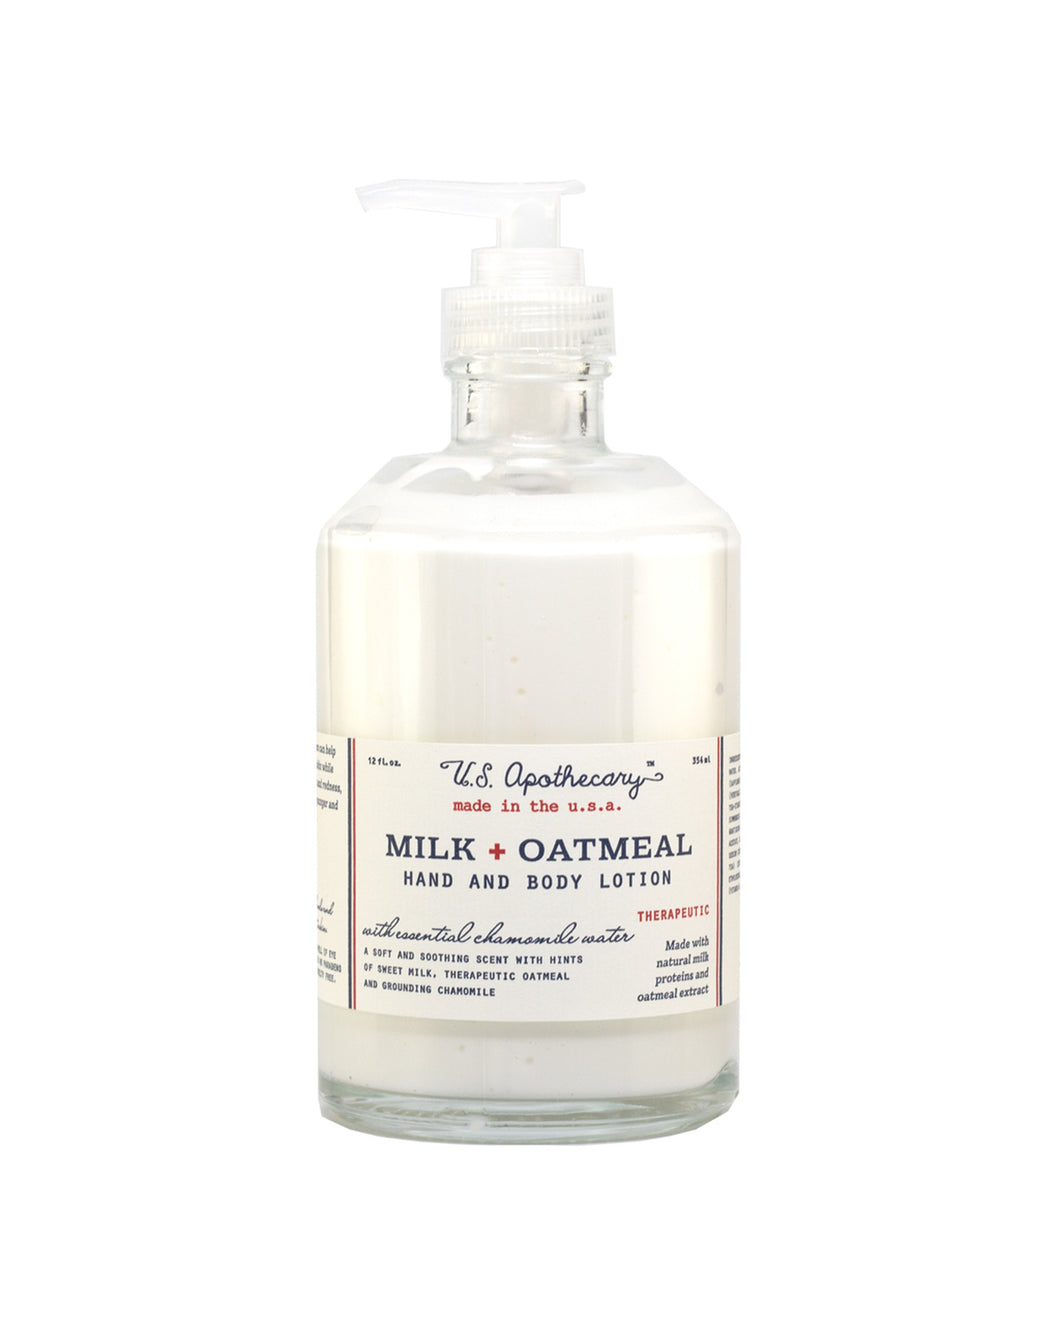 Milk & Oatmeal Lotion